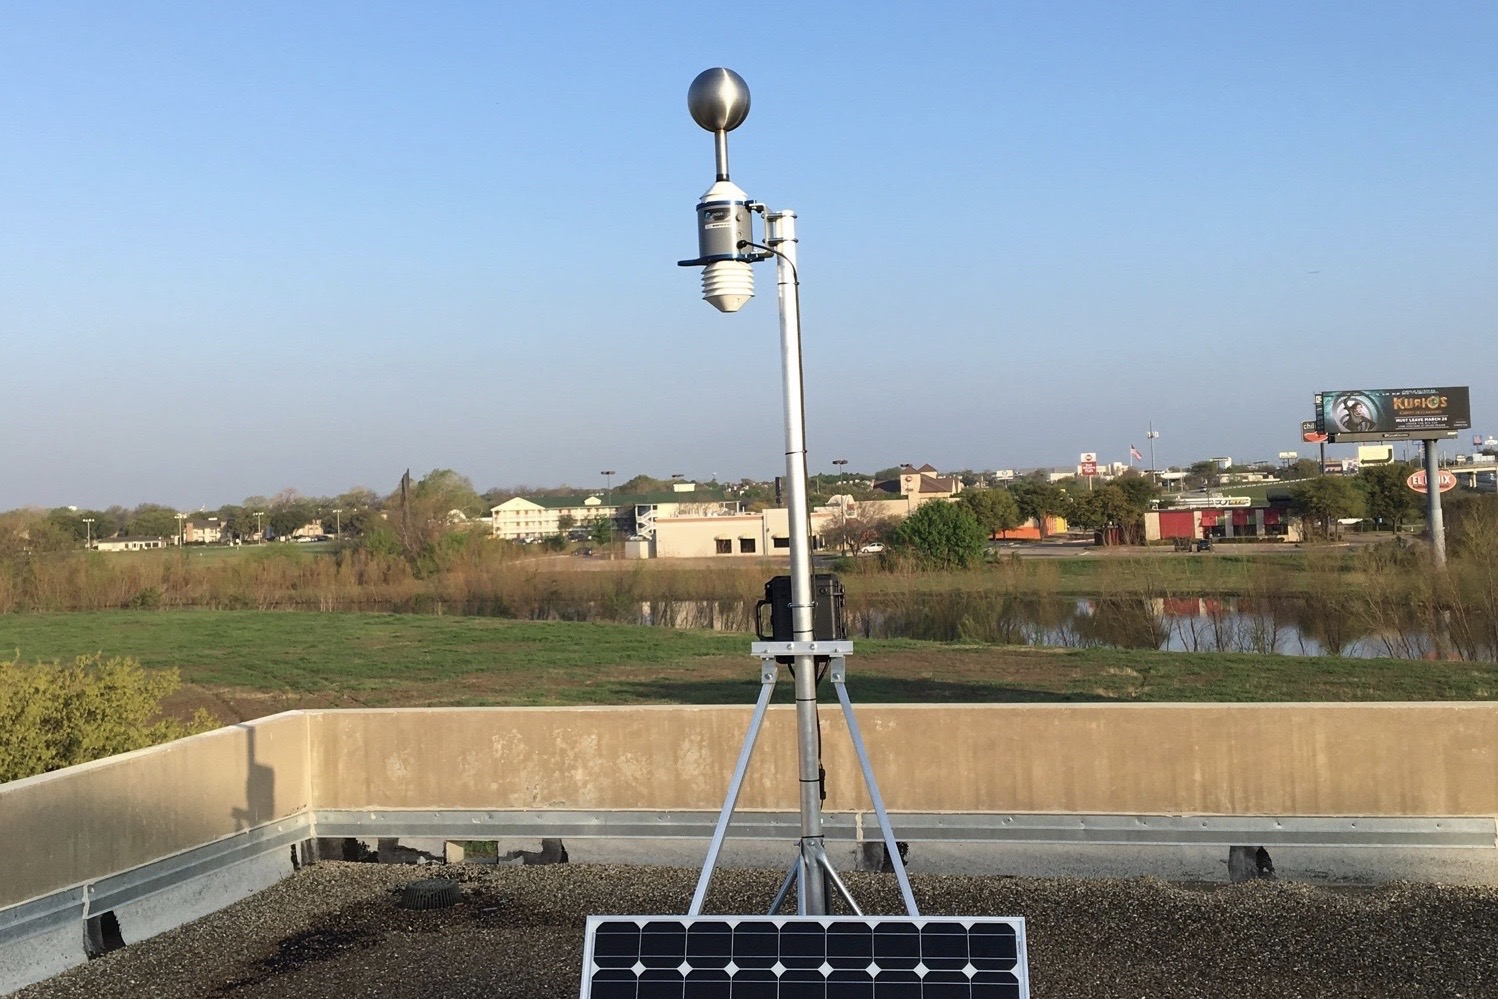 Understory weather station in Dallas